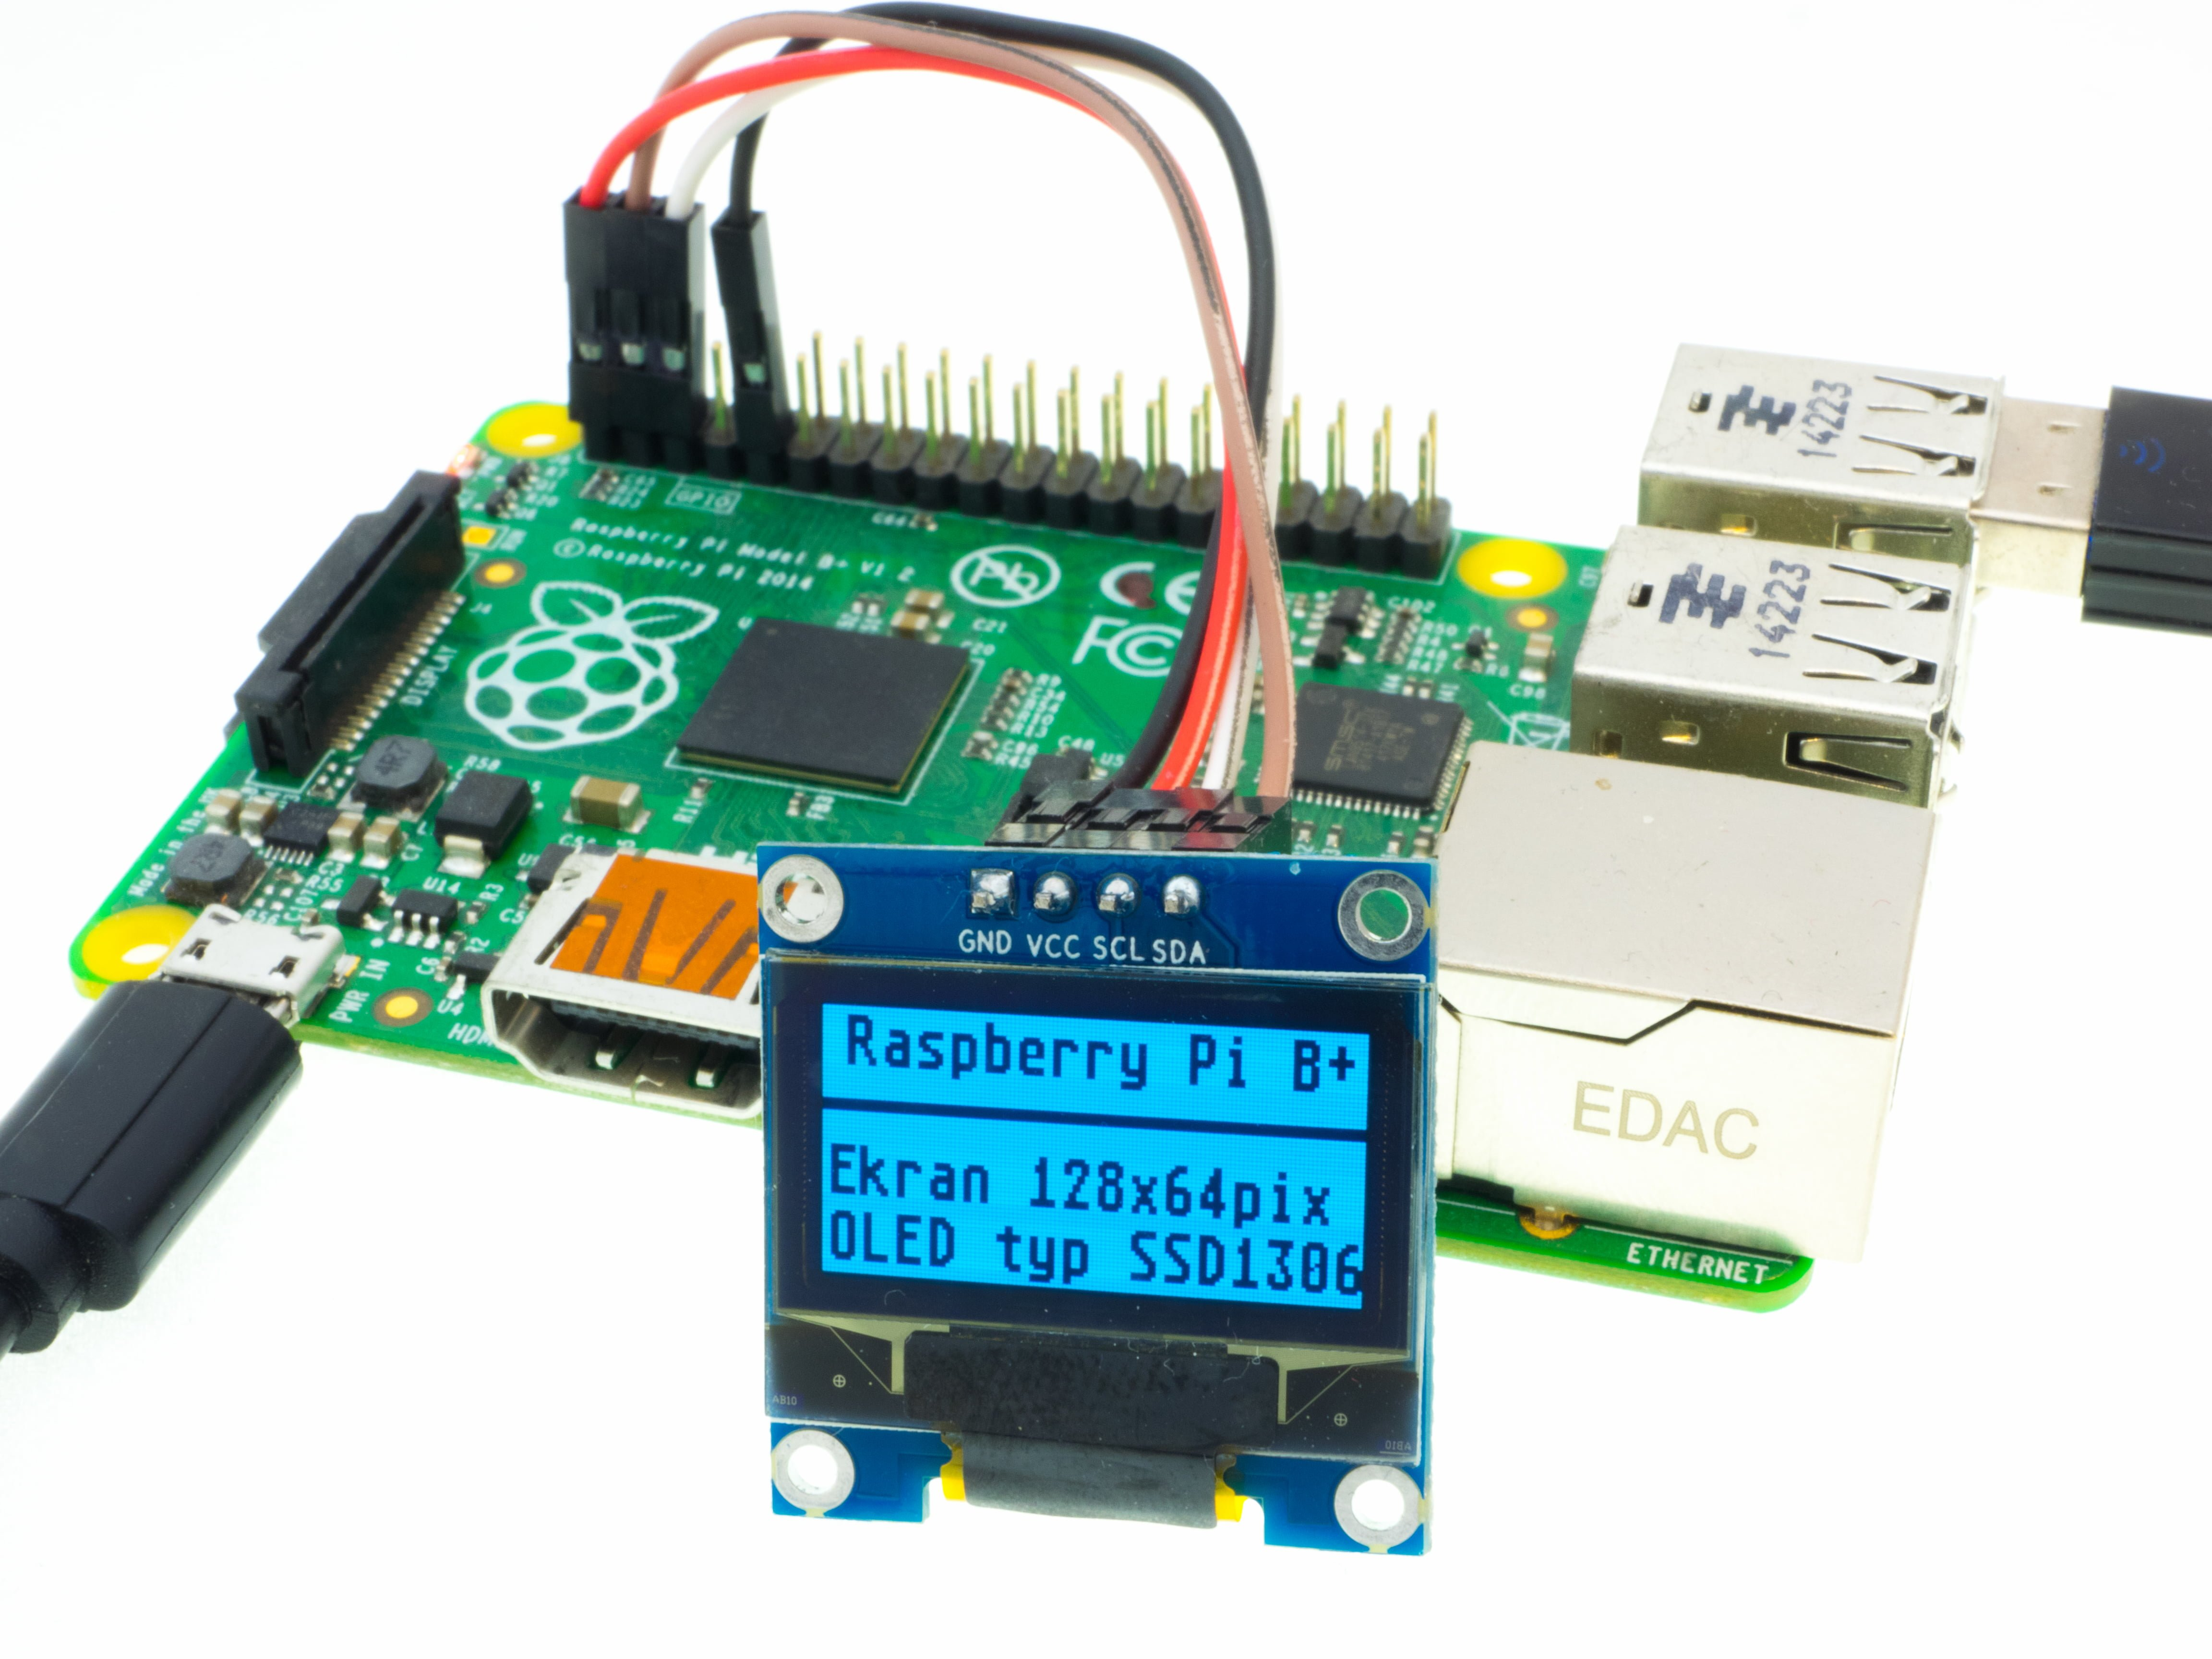 Raspberry Pi 2 Wiringpi I2c Oled Display Lets Play With The Technology Wywietlacz Ssd1306 Tekst